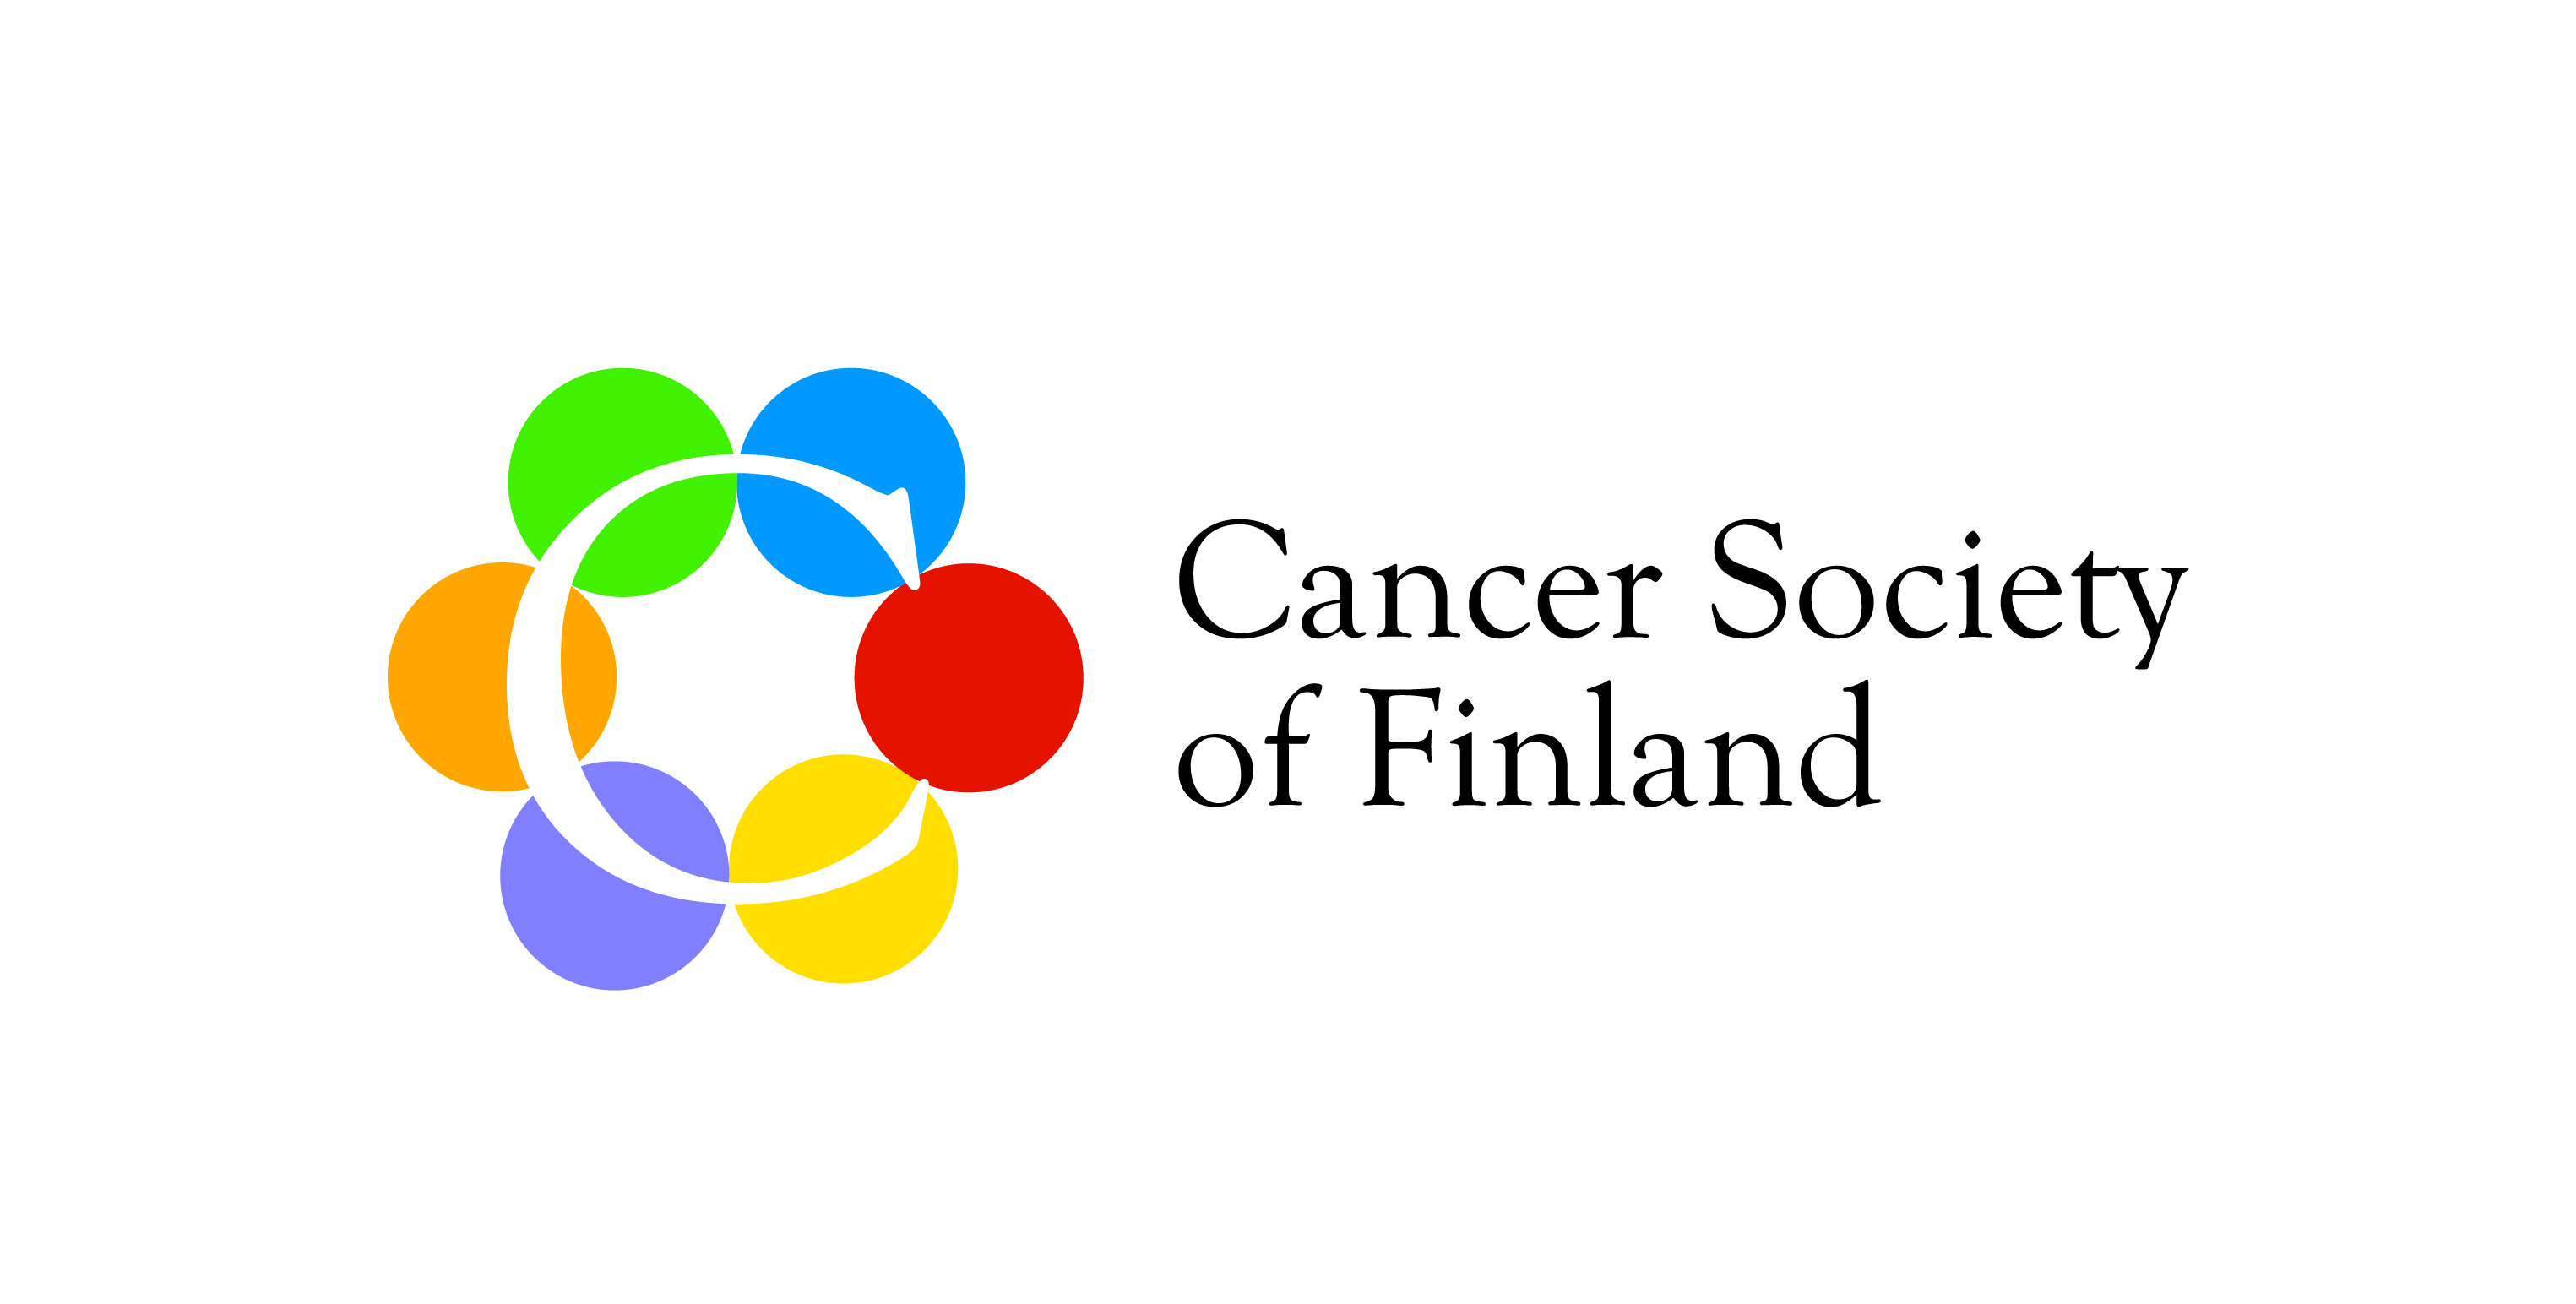 Cancer Society of Finland